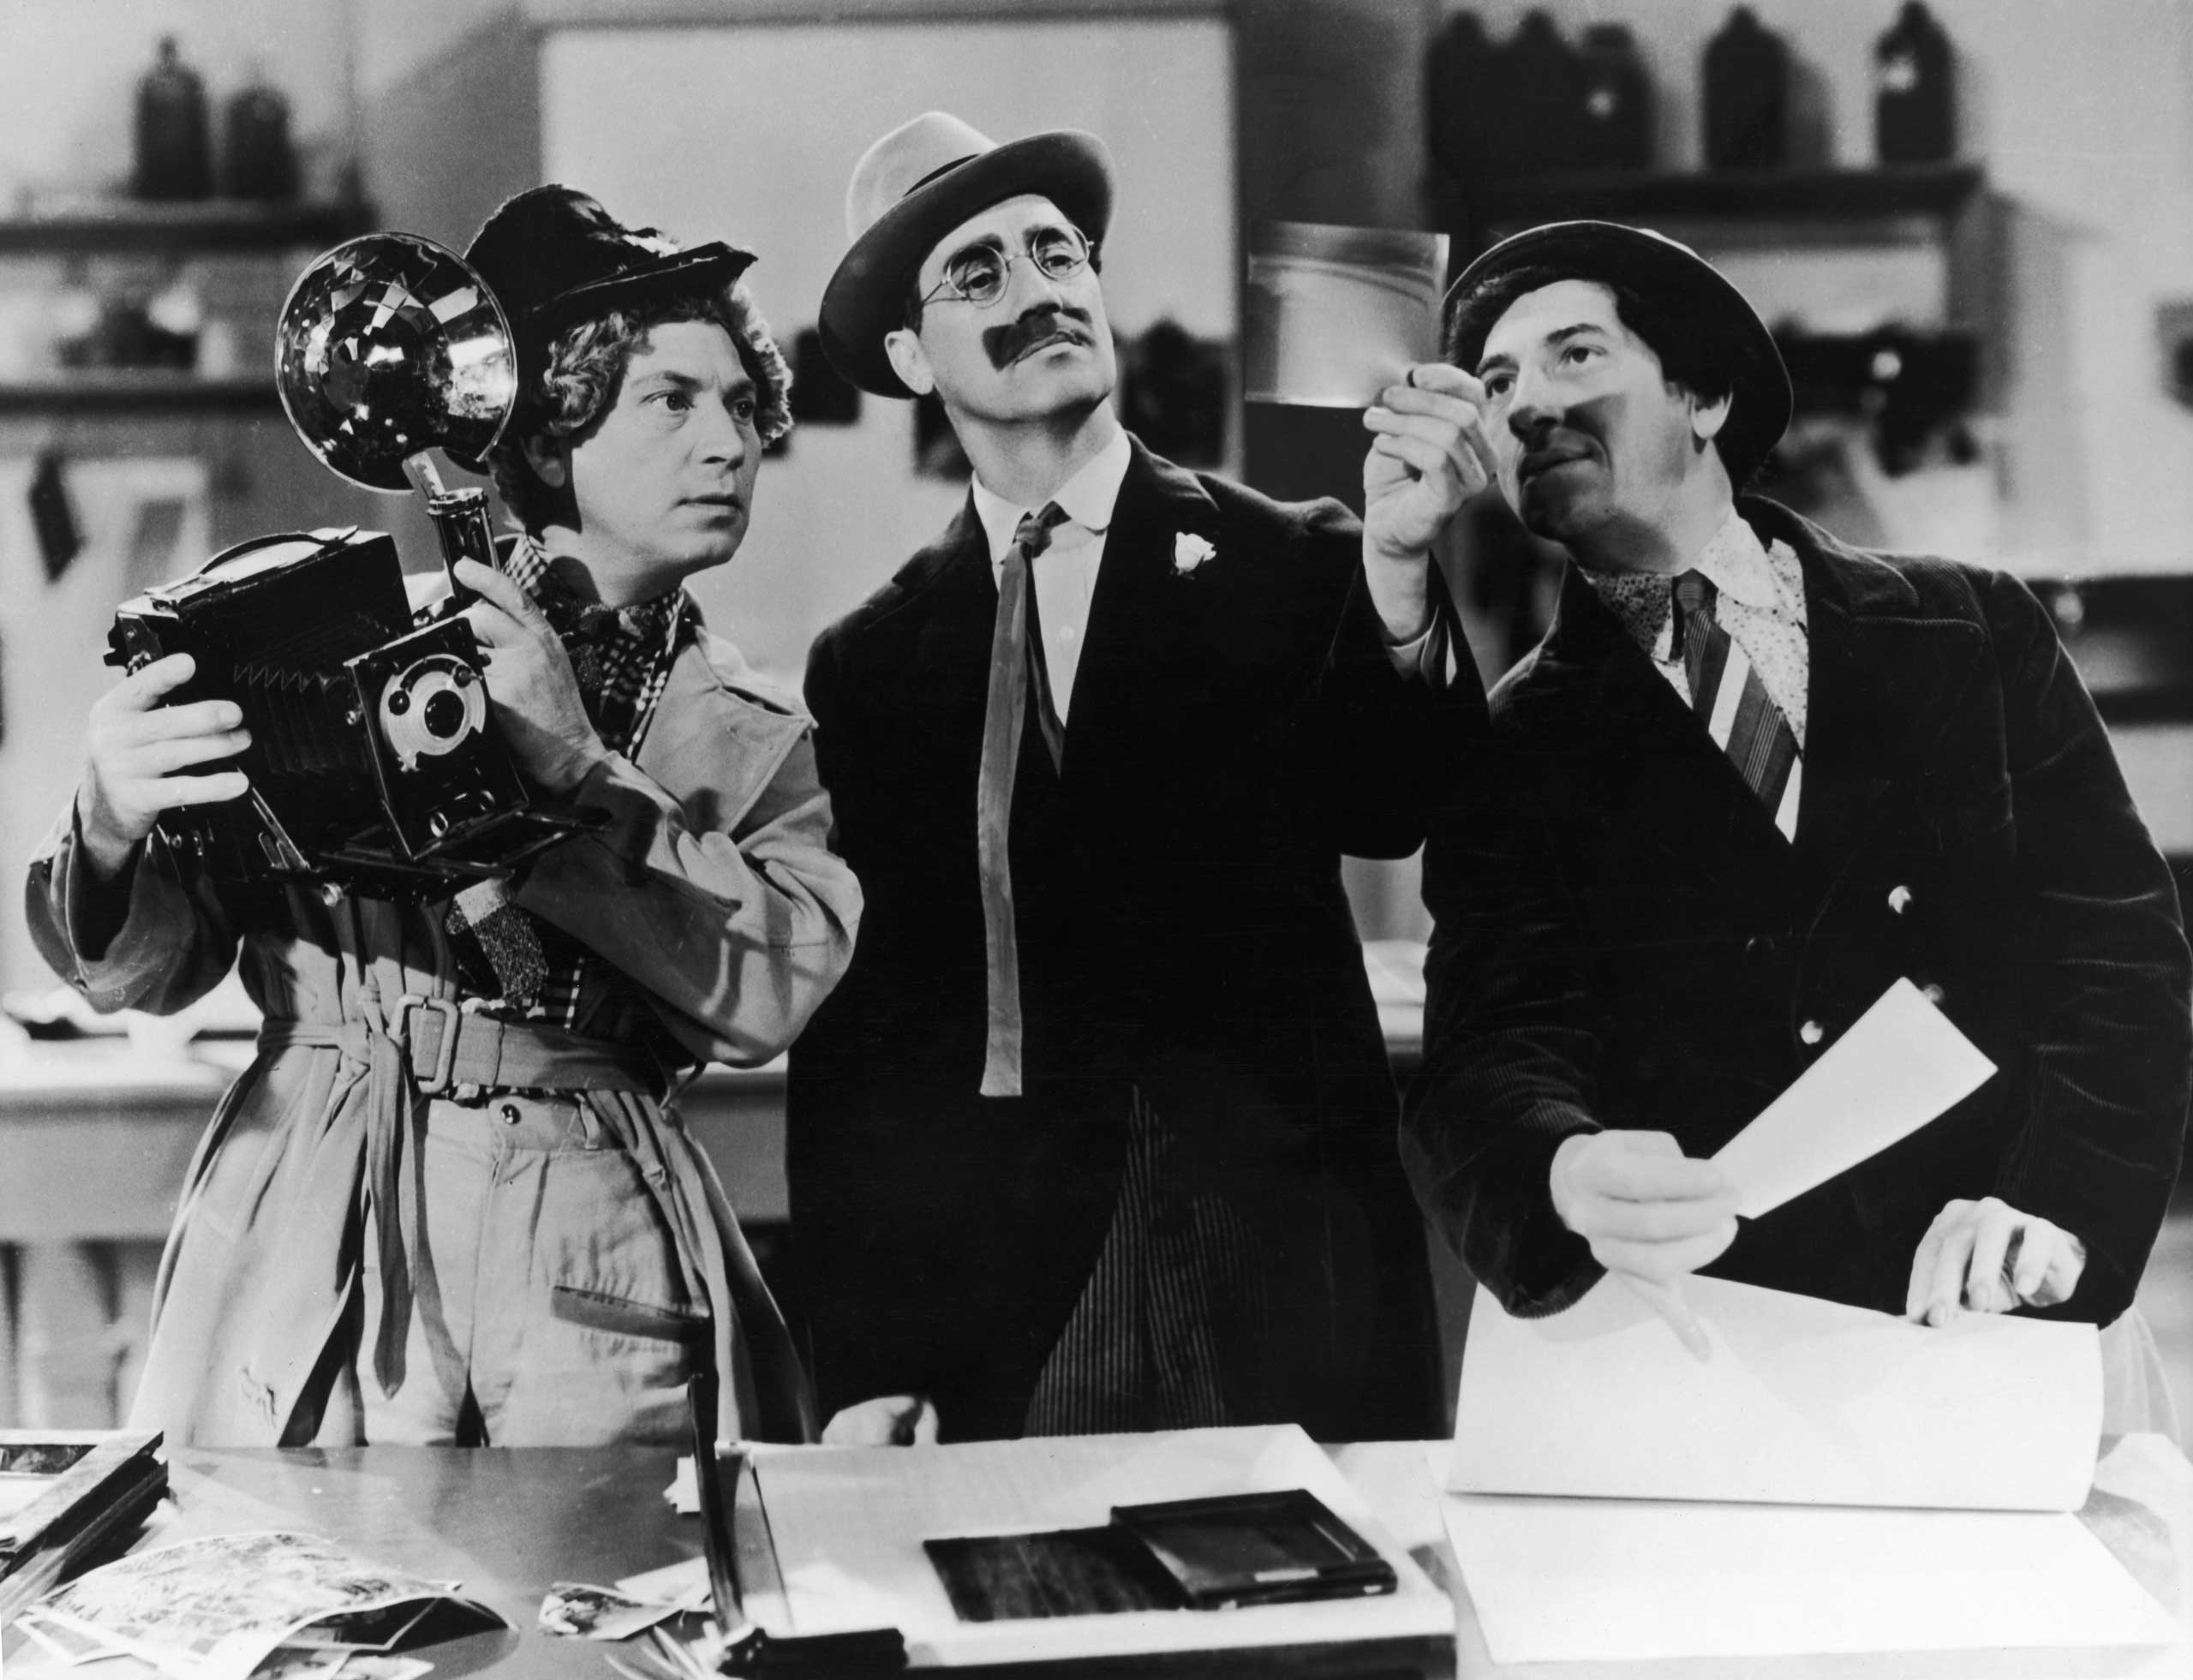 Harpo Marx, Groucho Marx and Chico Marx examining the negatives from a photo-finish in a scene from the comedy 'A Day at the Races', directed by Sam Wood, 1937.